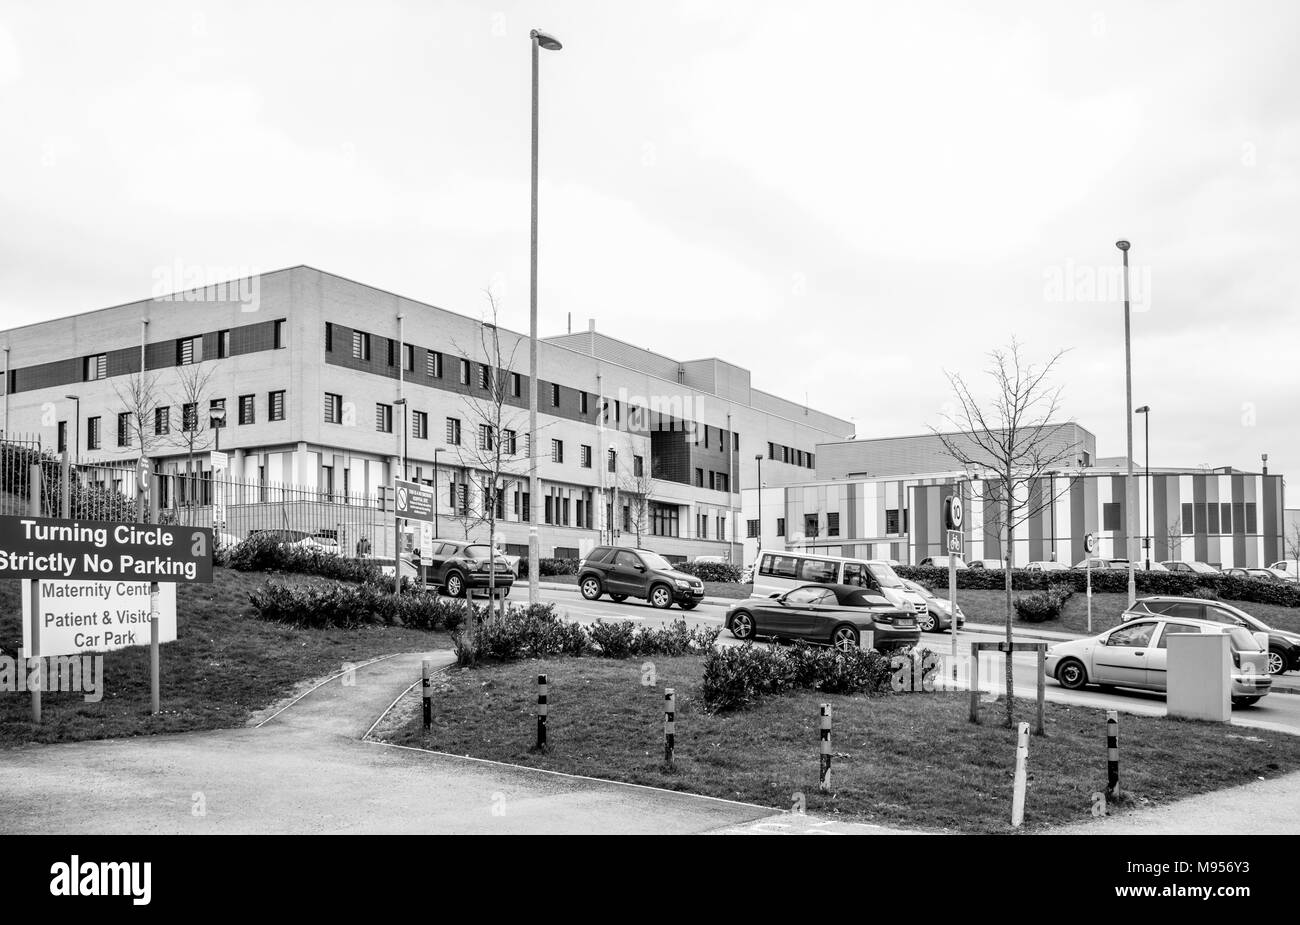 The Royal Stoke Hospital of the Universities of North Staffordshire Hospitals Trust in Stoke on Trent - Stock Image